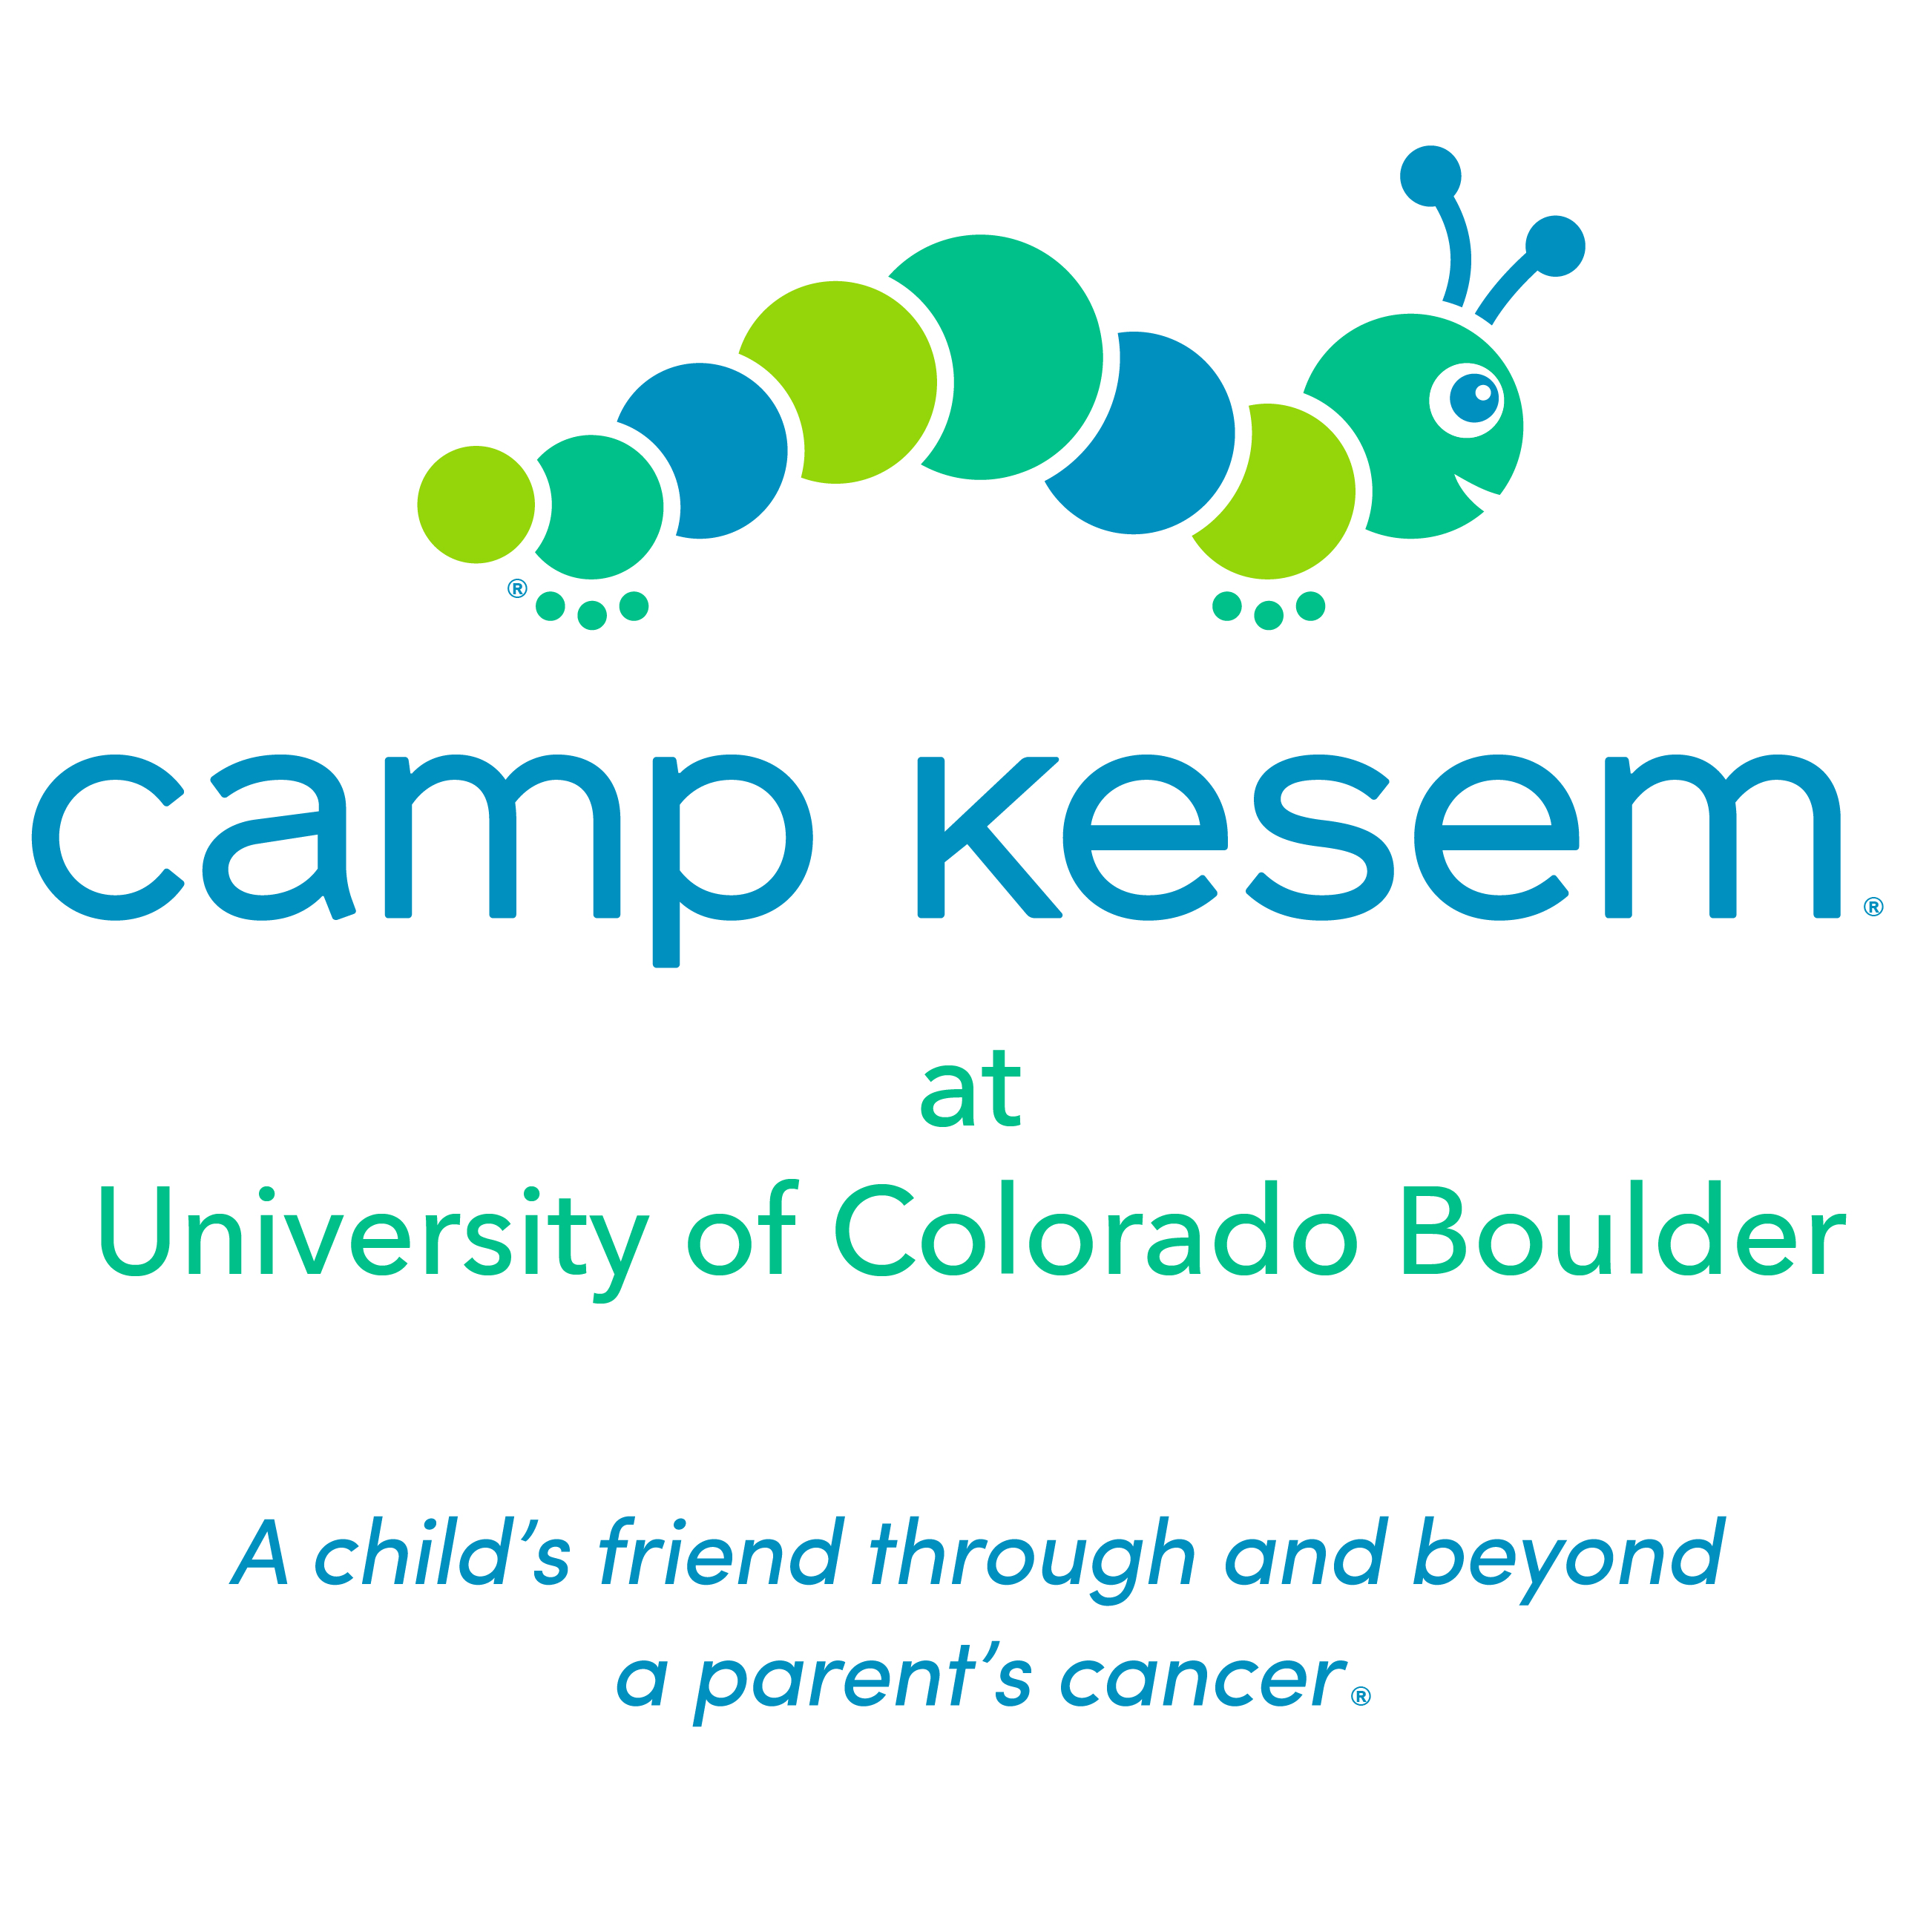 Camp Kesem at University of Colorado Boulder